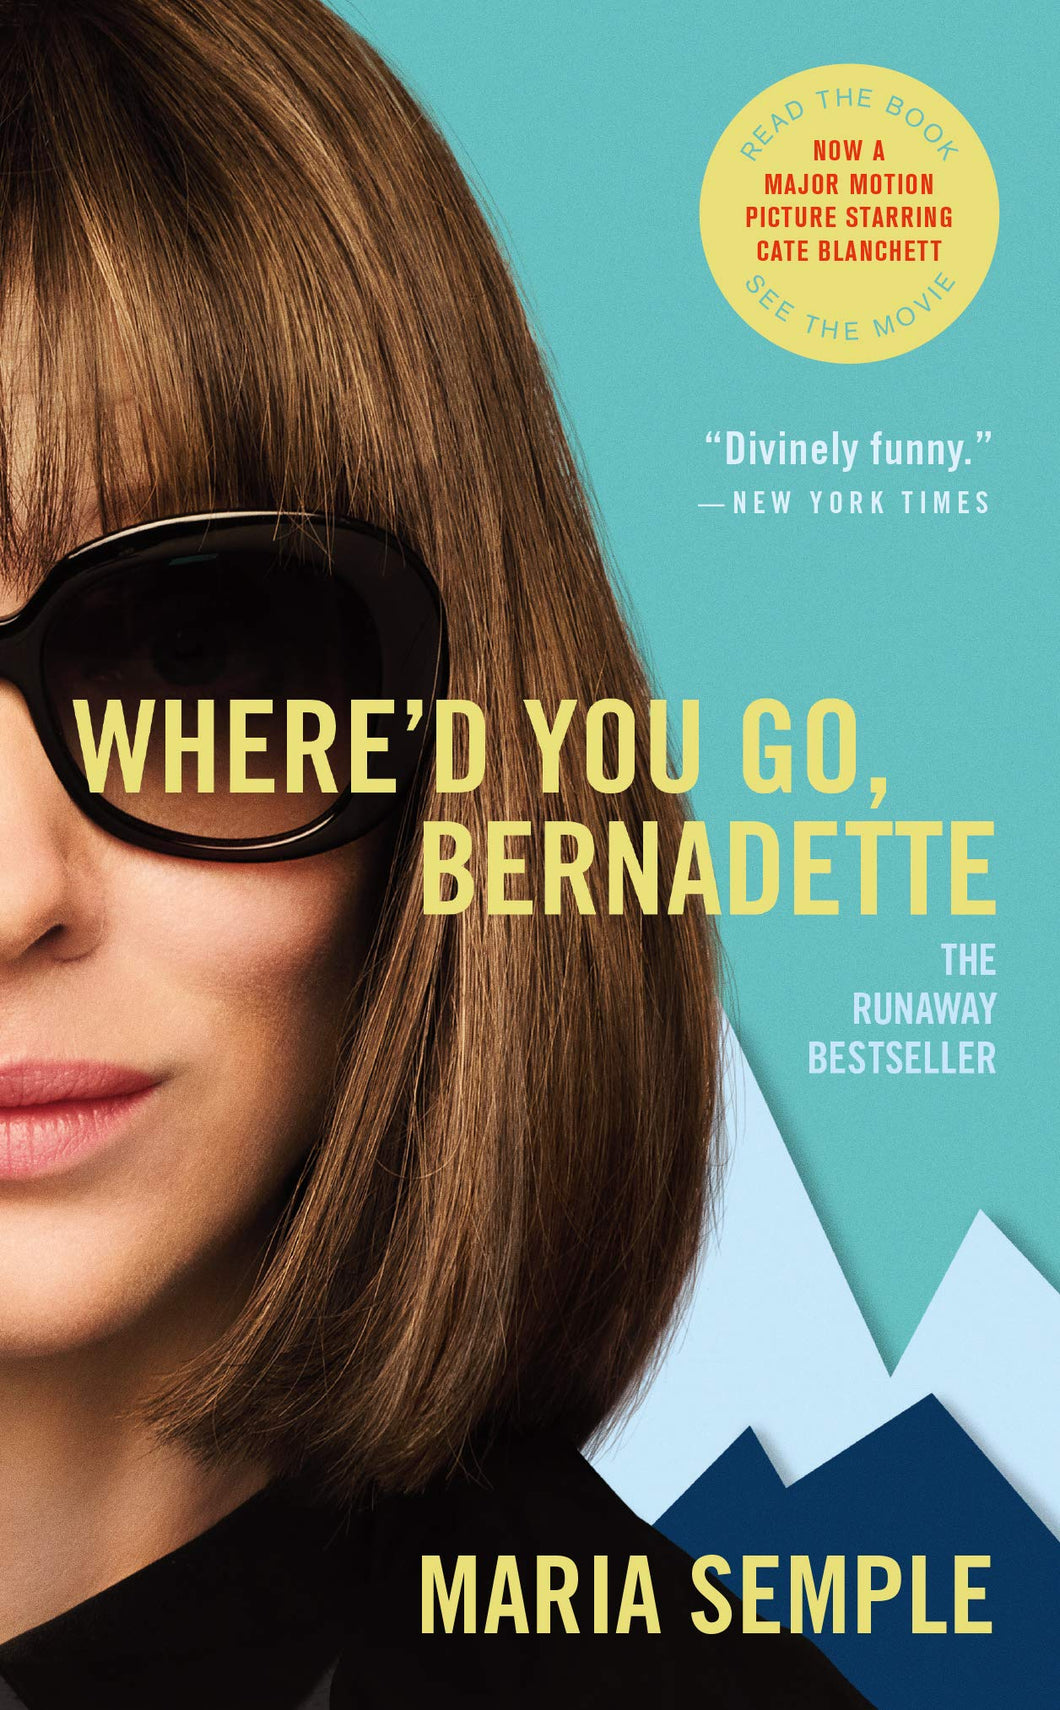 Where'd You Go, Bernadette [Maria Semple]